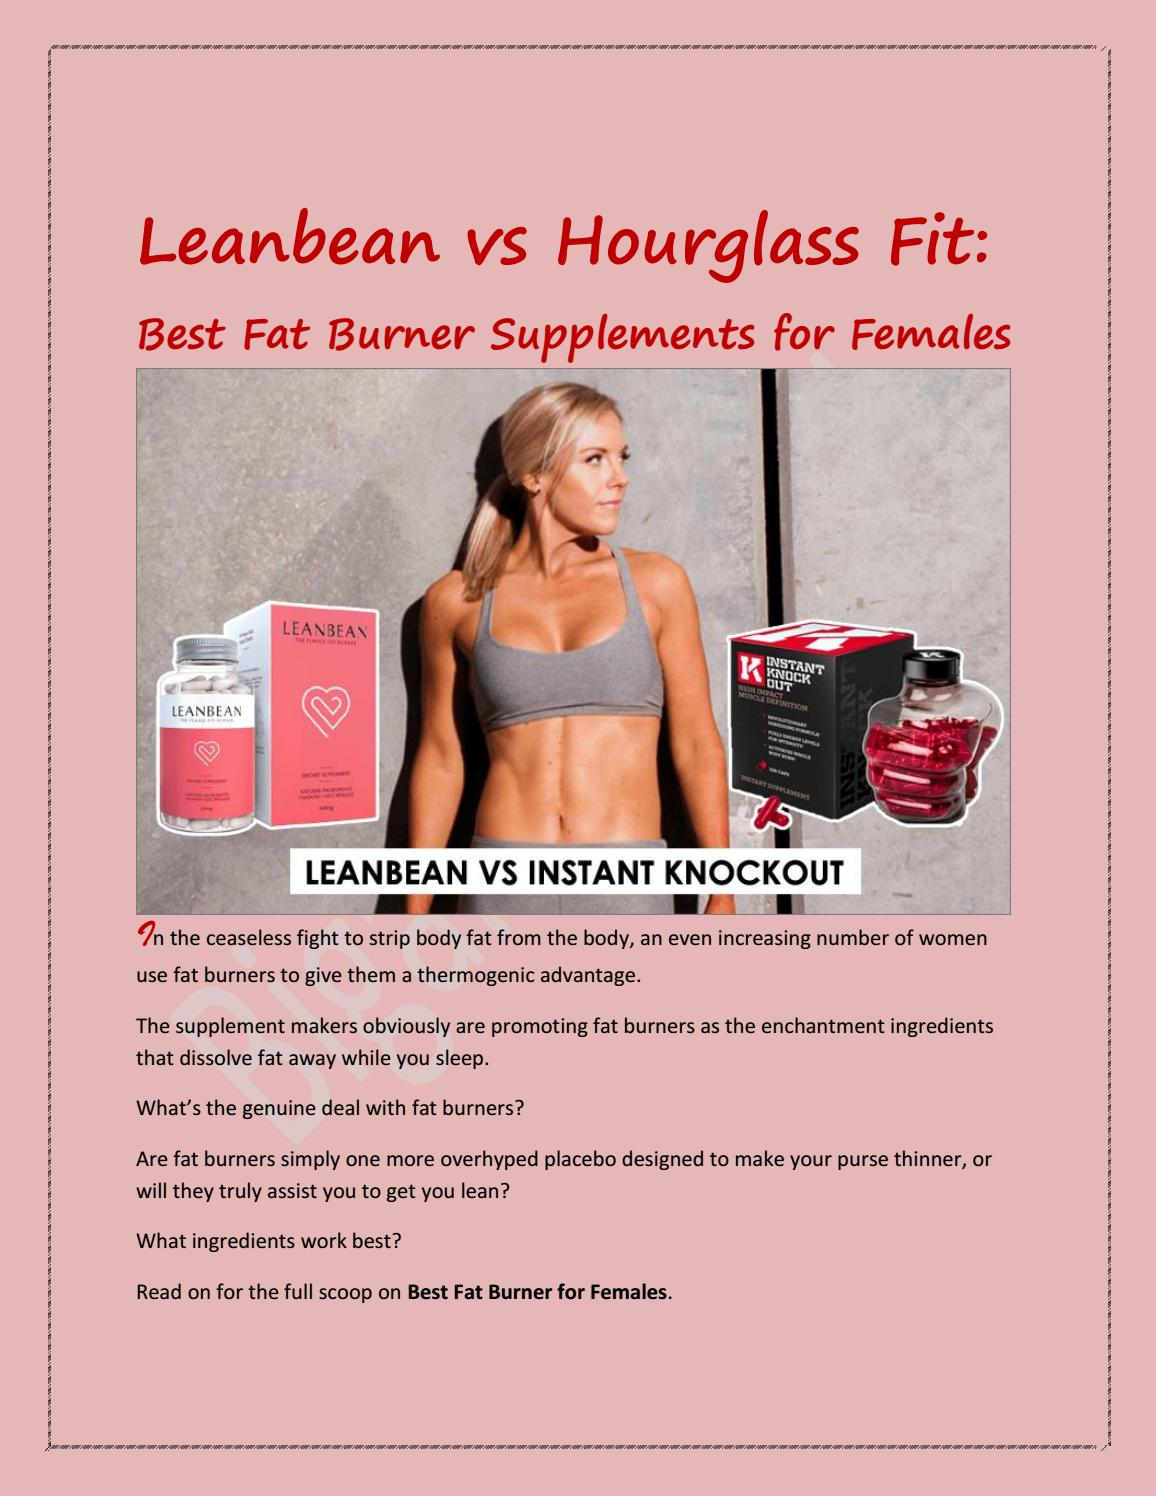 Best Fat Burner for Females That Actually Work to Shred Fat